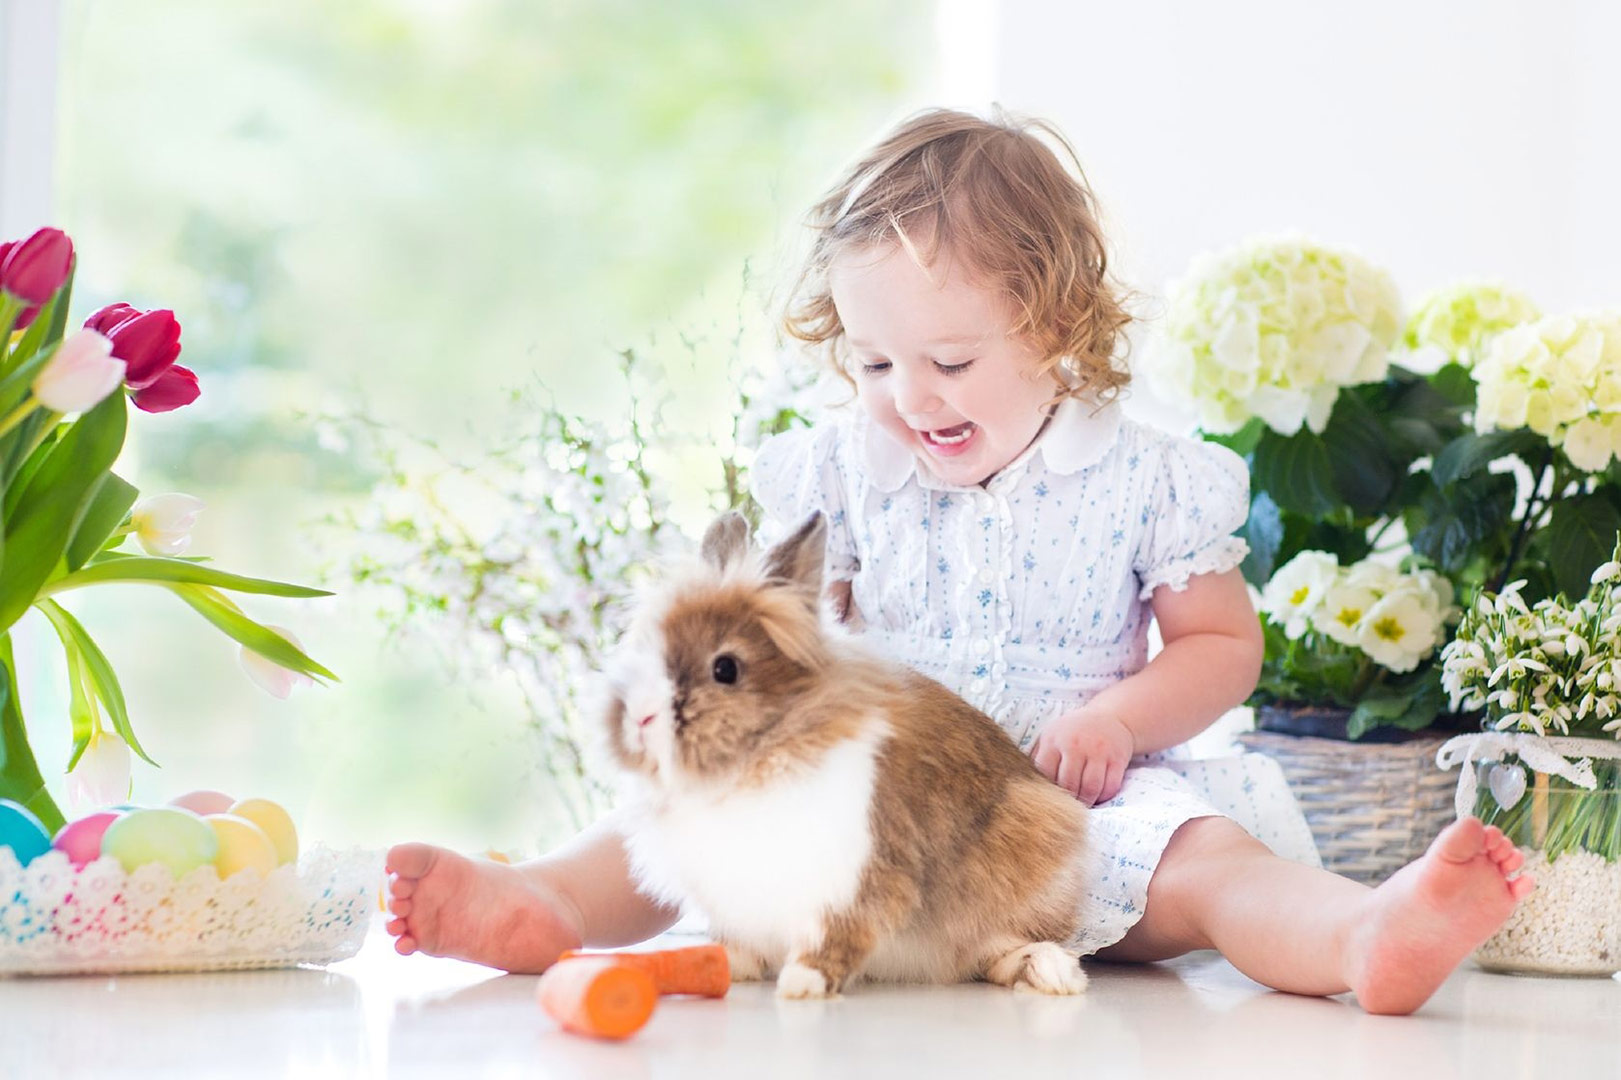 Hartleys-blog-on-easter-egg-hunt-ideas-picture-of-a-little-girl-and-a-rabbit